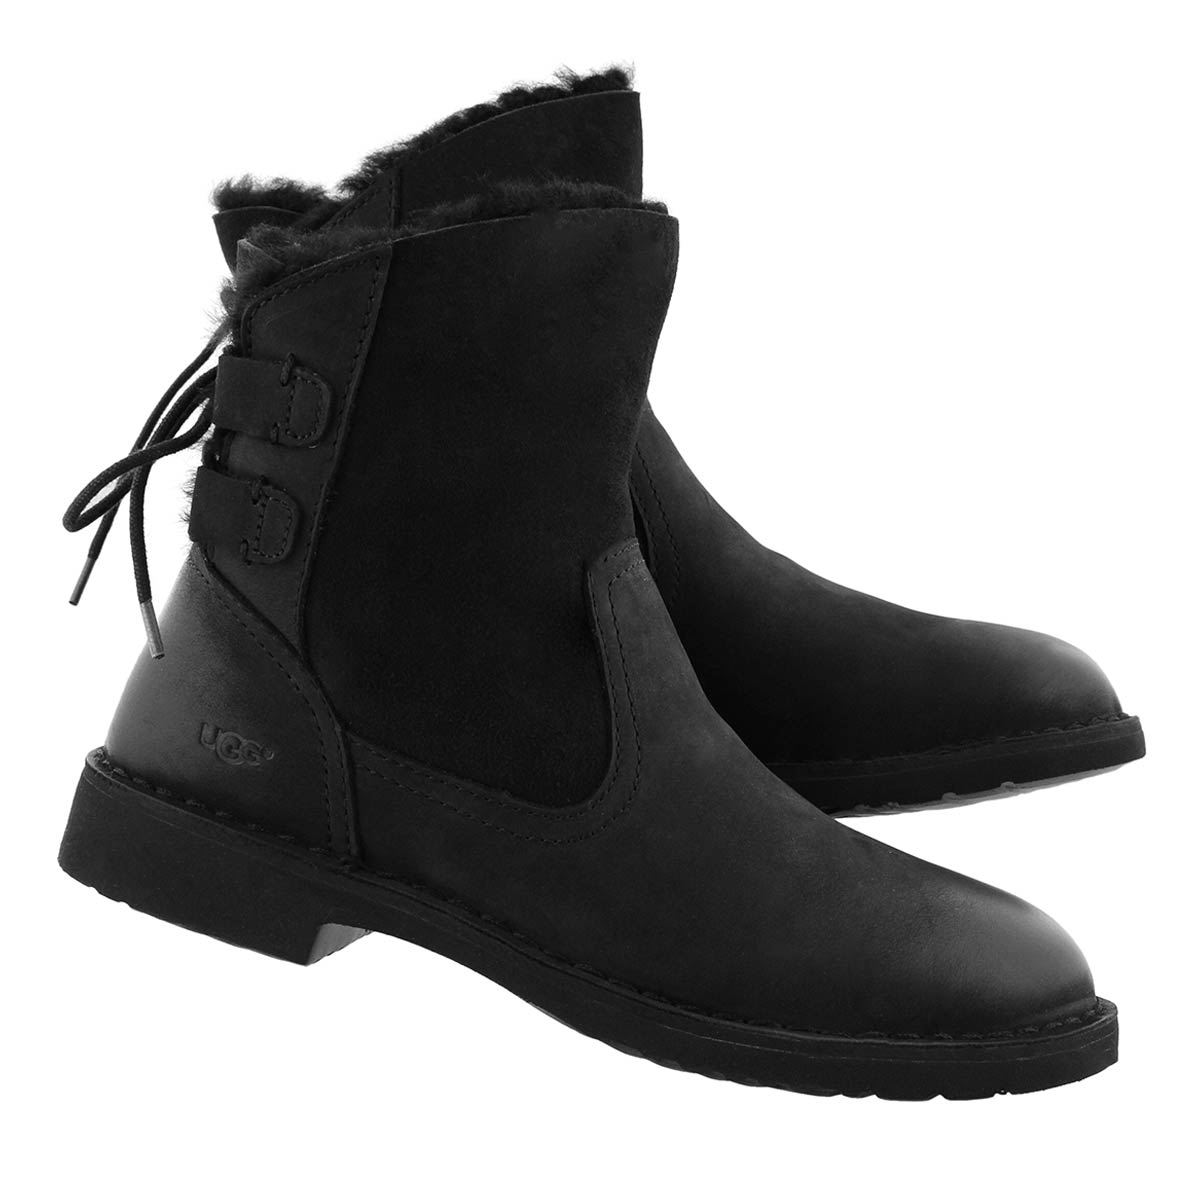 Lds Naiyah blk back lace sheepskin boot